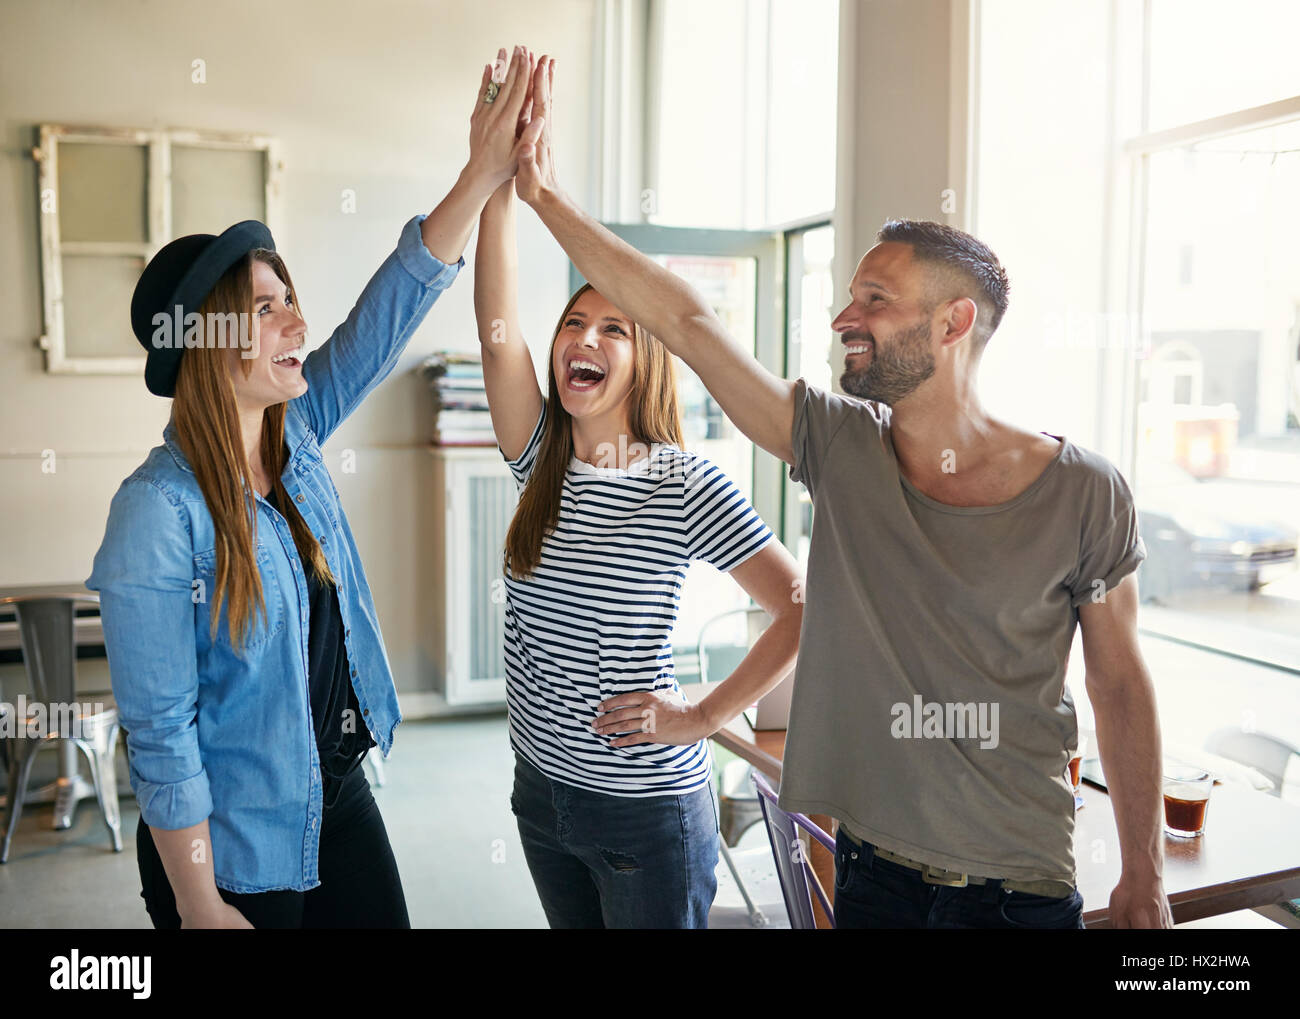 Young smiling trendy co-workers making gesture of high five in light spacious office. - Stock Image